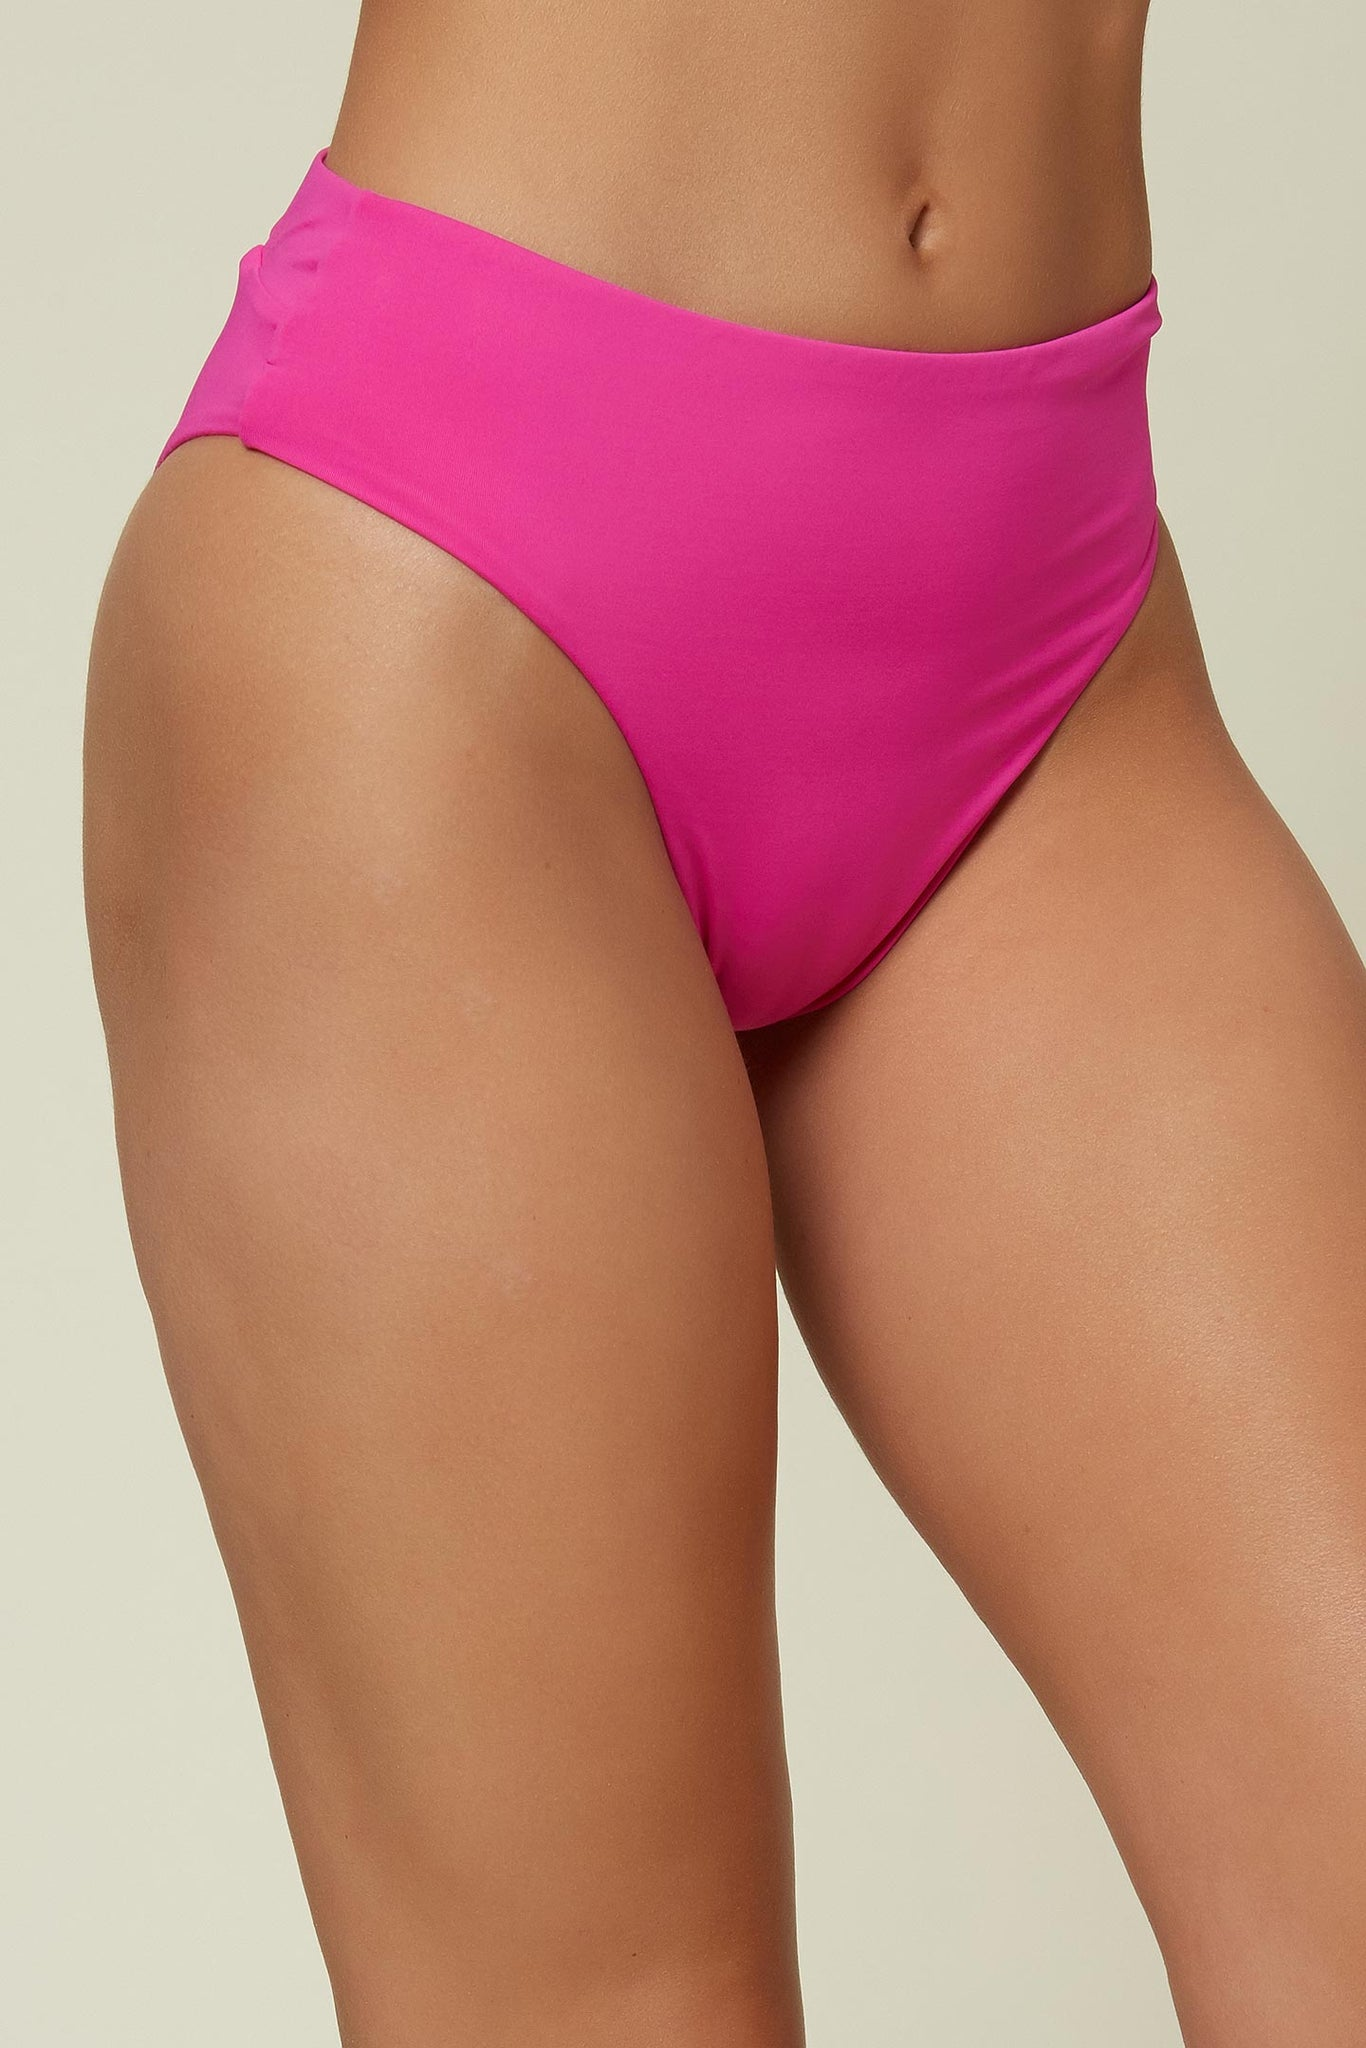 SALTWATER SOLIDS HI-WAIST BOTTOMS